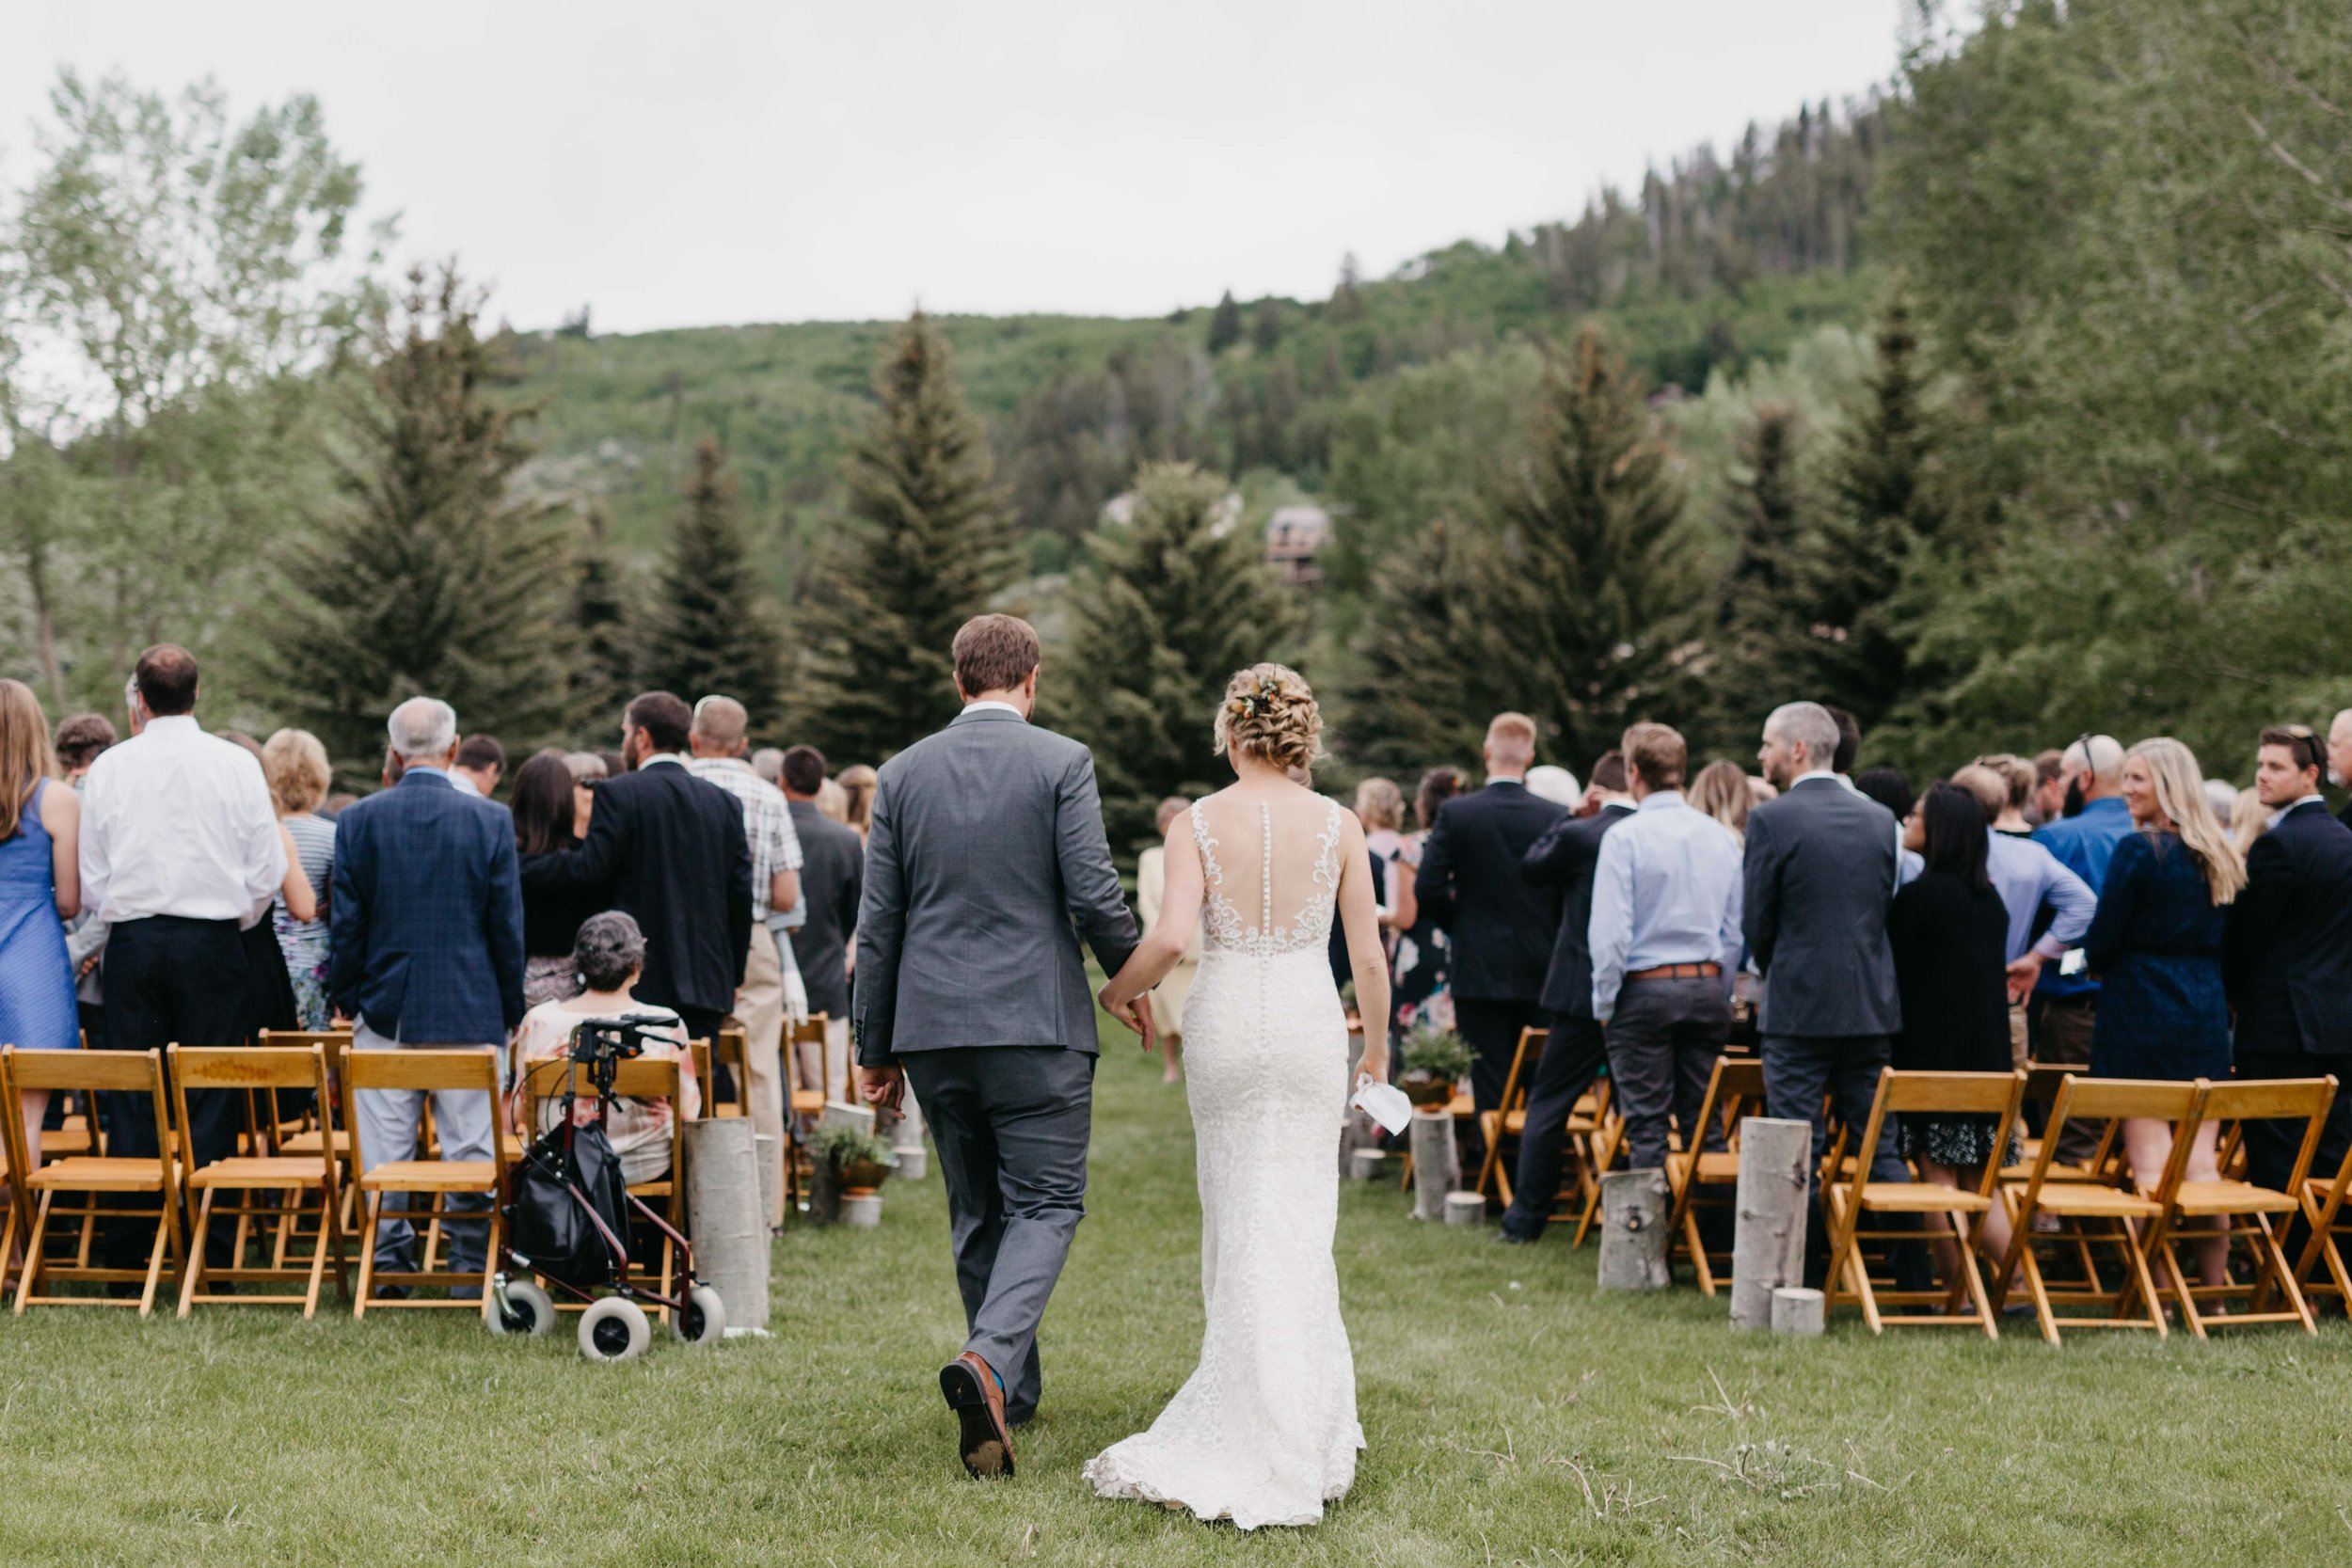 Colorado-Wedding-Photographer-75.jpg